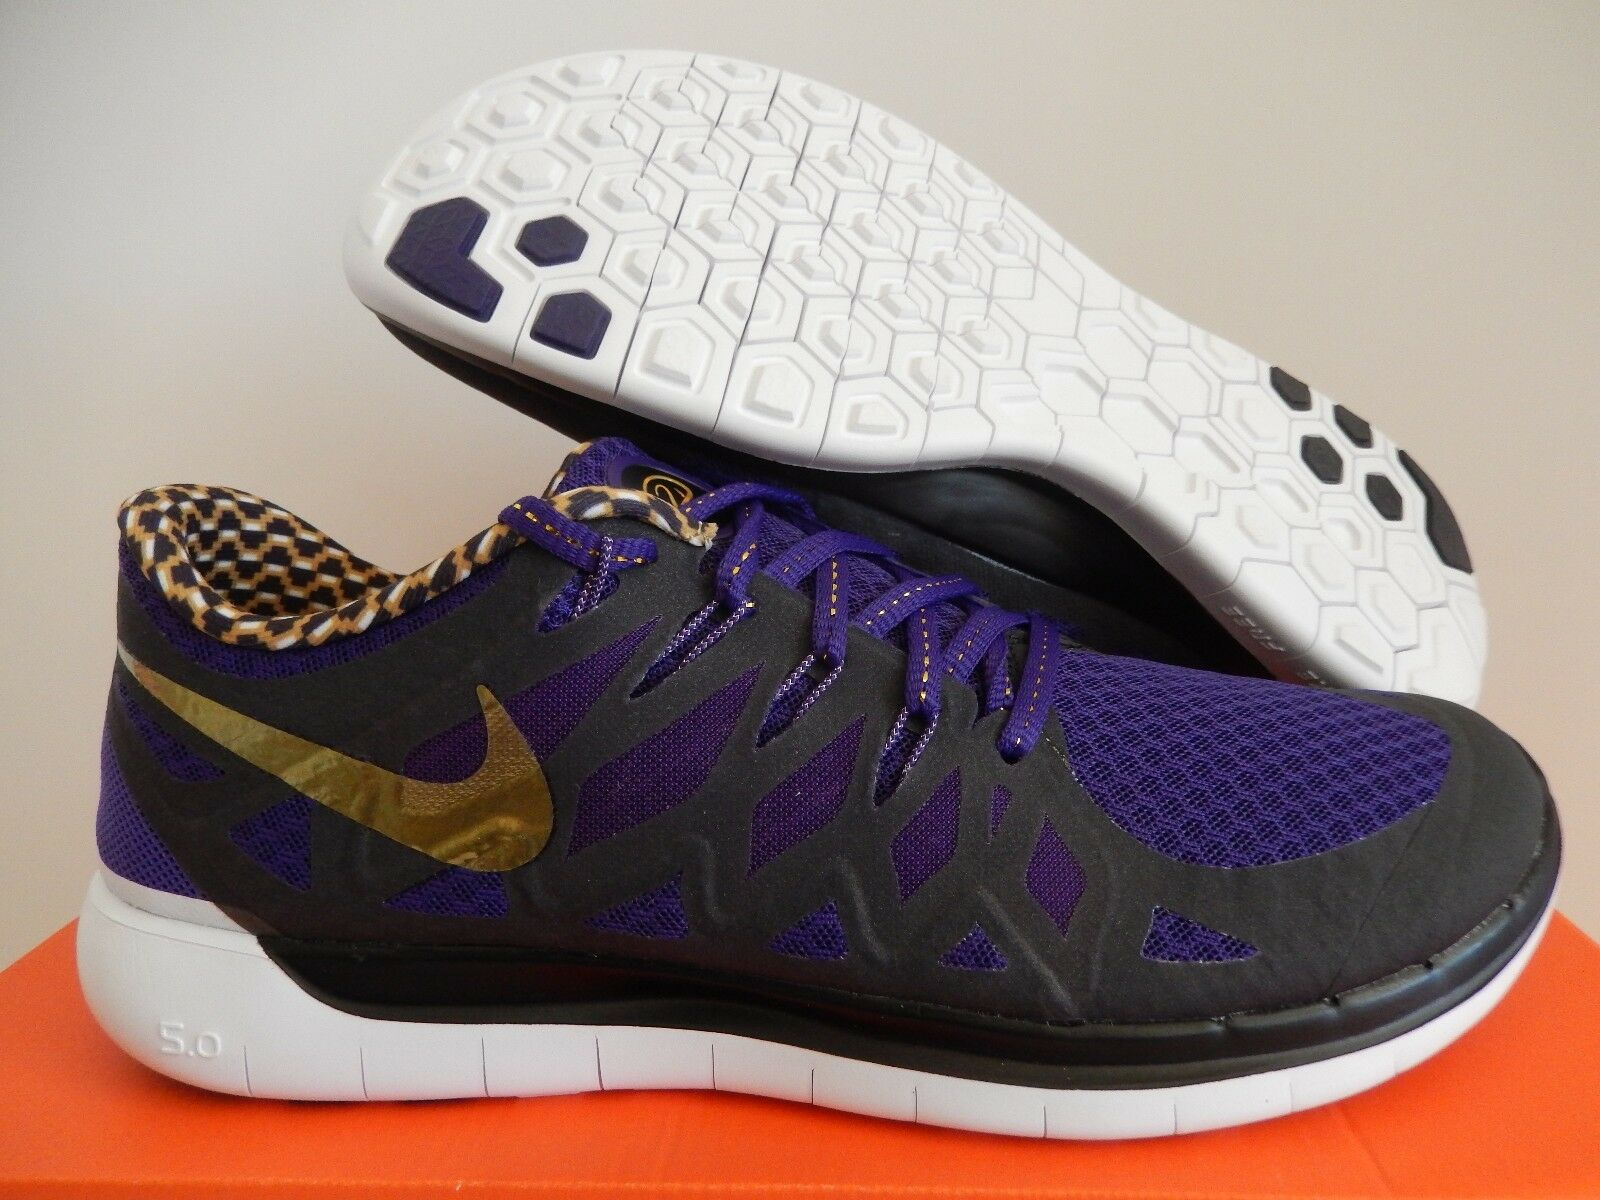 NIKE FREE 5.0 DB COURT PURPLE-METALLIC GOLD-BLACK SZ 10 [725566-580]